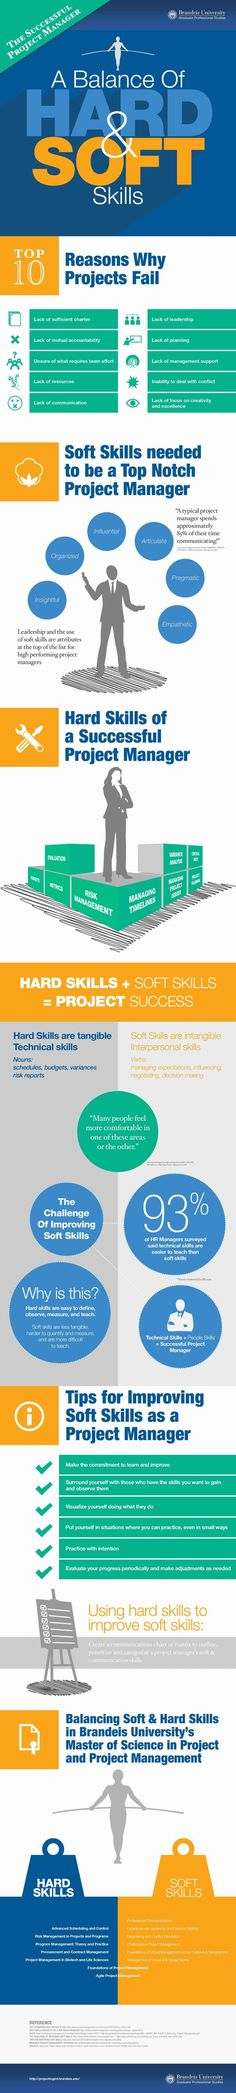 Project management skills: Project management skills http://snip.ly/kcXc?utm_content=buffer375b9&utm_medium=social&utm_source=pinterest.com&utm_campaign=buffer